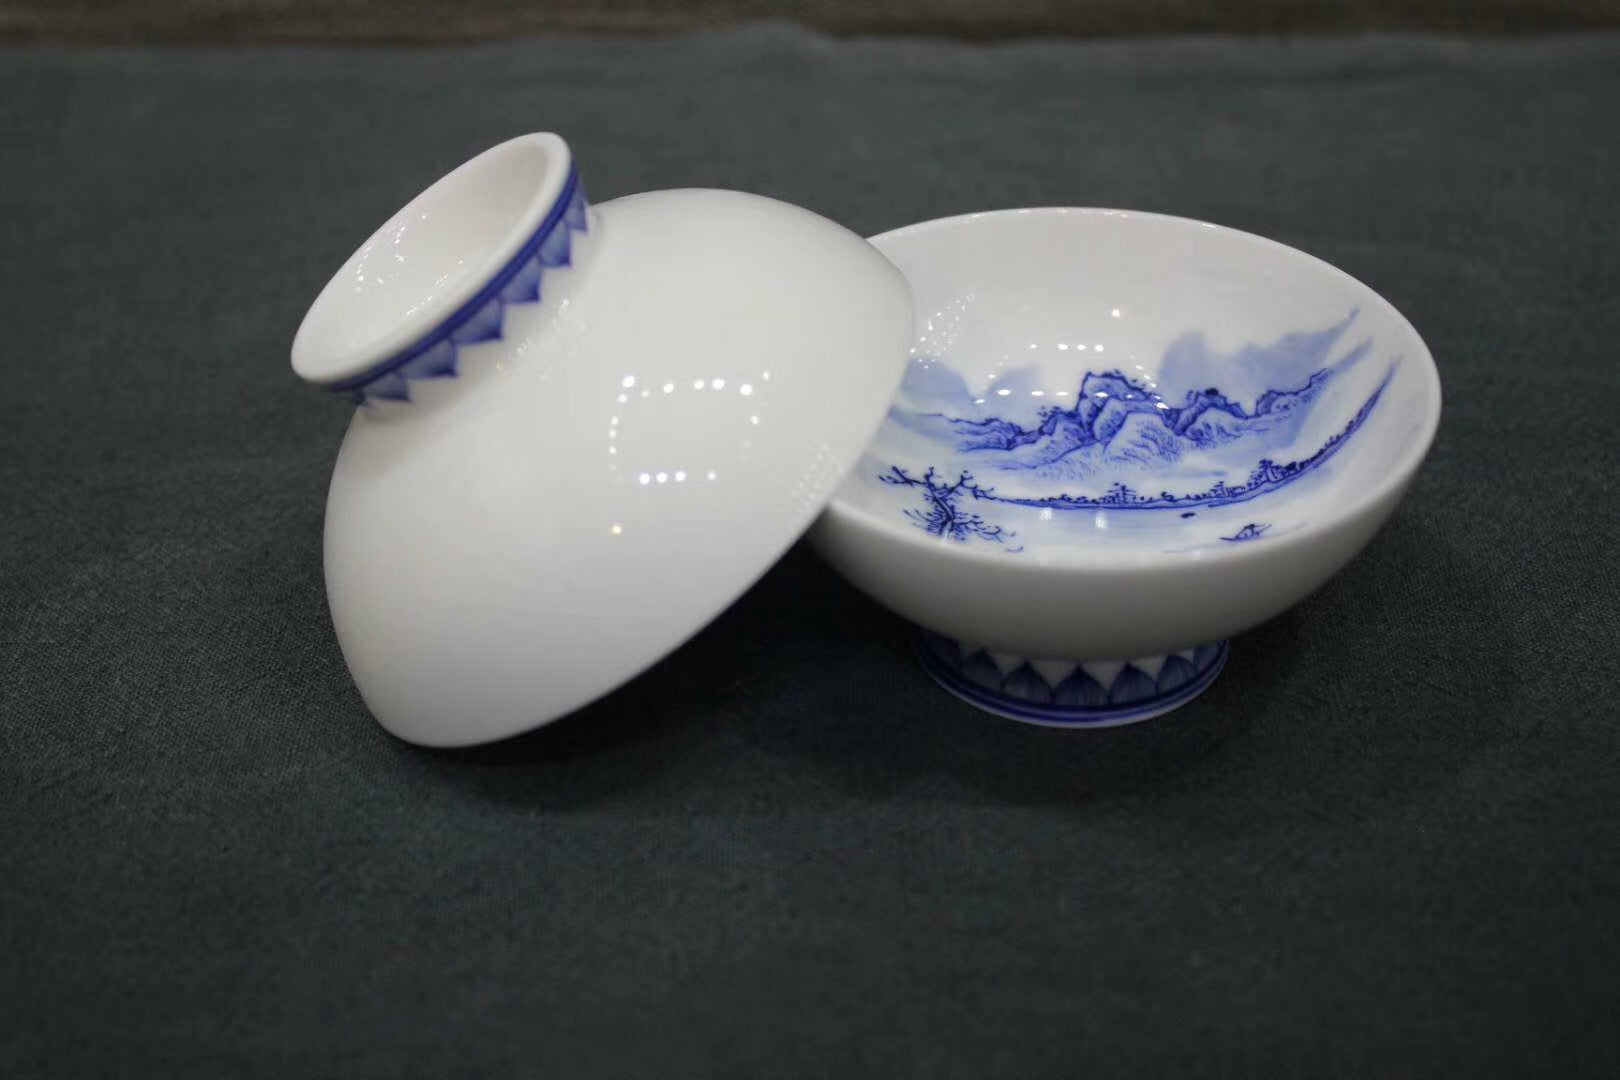 Zhonggong Mountain and River Qing hua (blue flowers) Cup